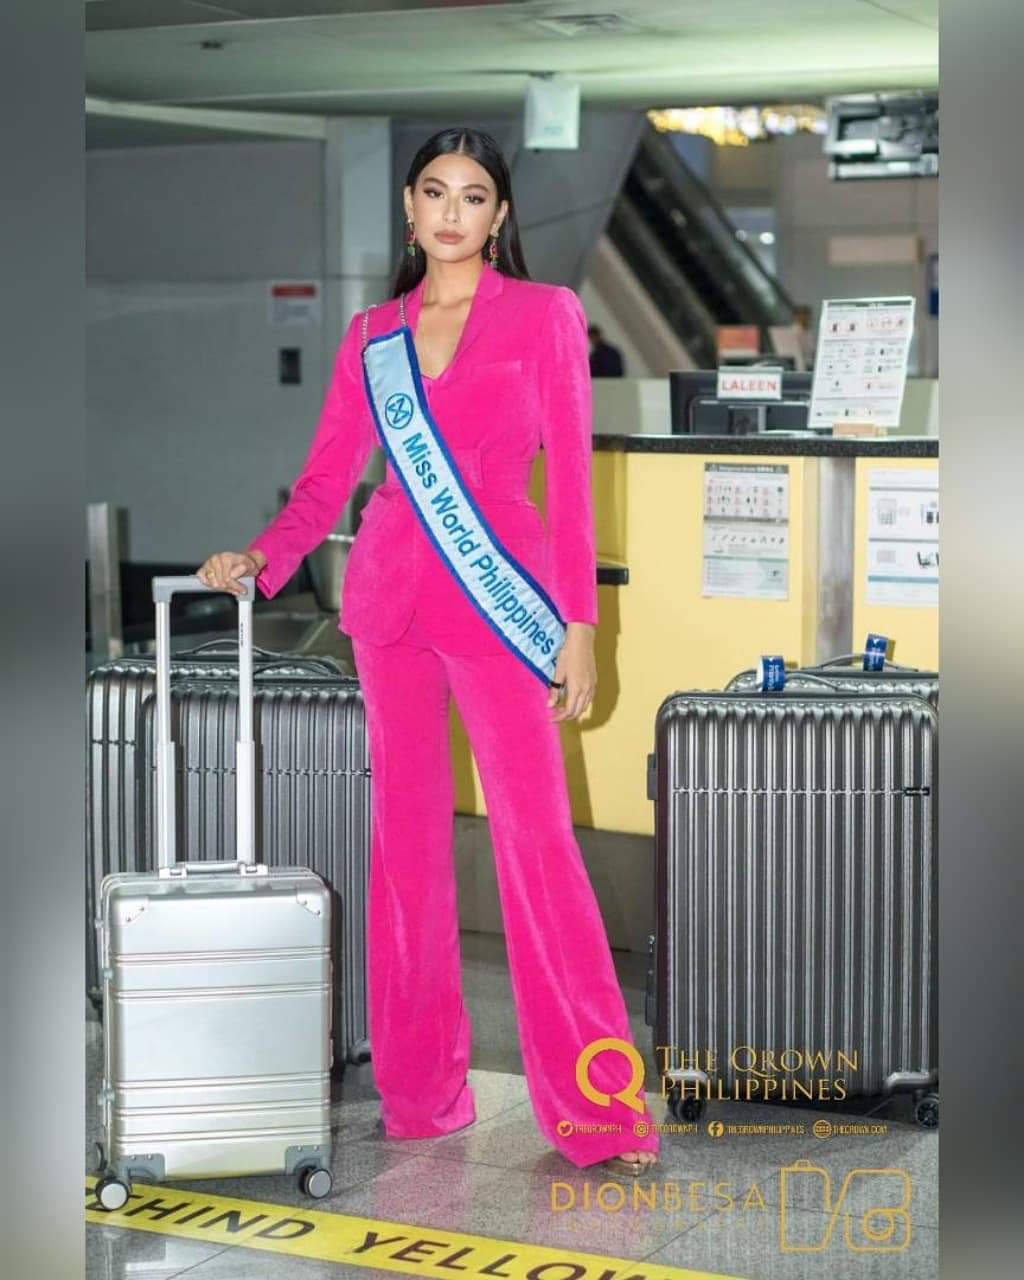 ✪✪✪ MISS WORLD 2019 - COVERAGE ✪✪✪ - Page 2 Fb_12631